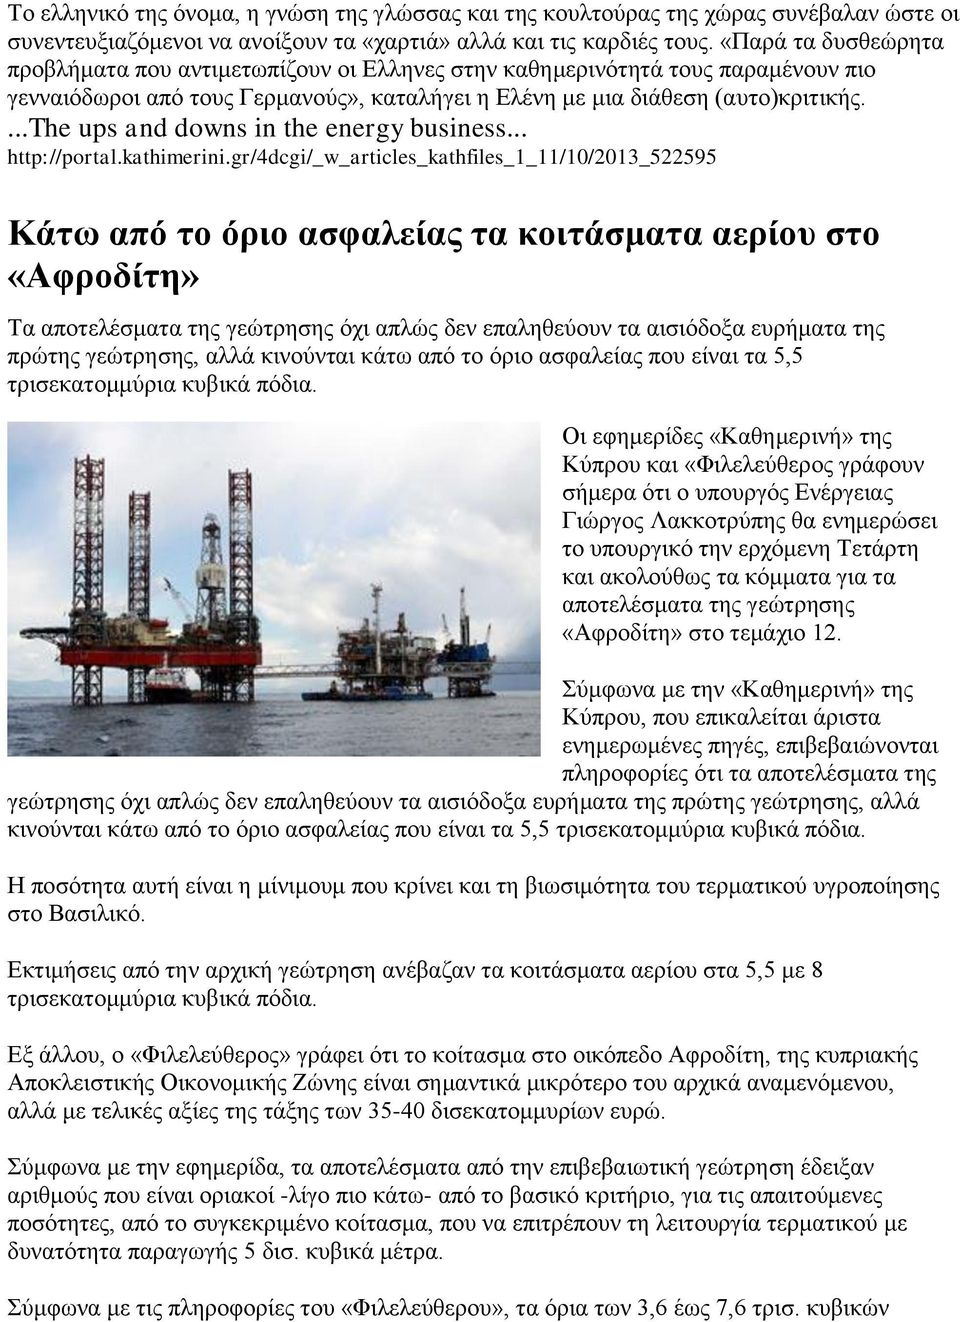 ...the ups and downs in the energy business... http://portal.kathimerini.